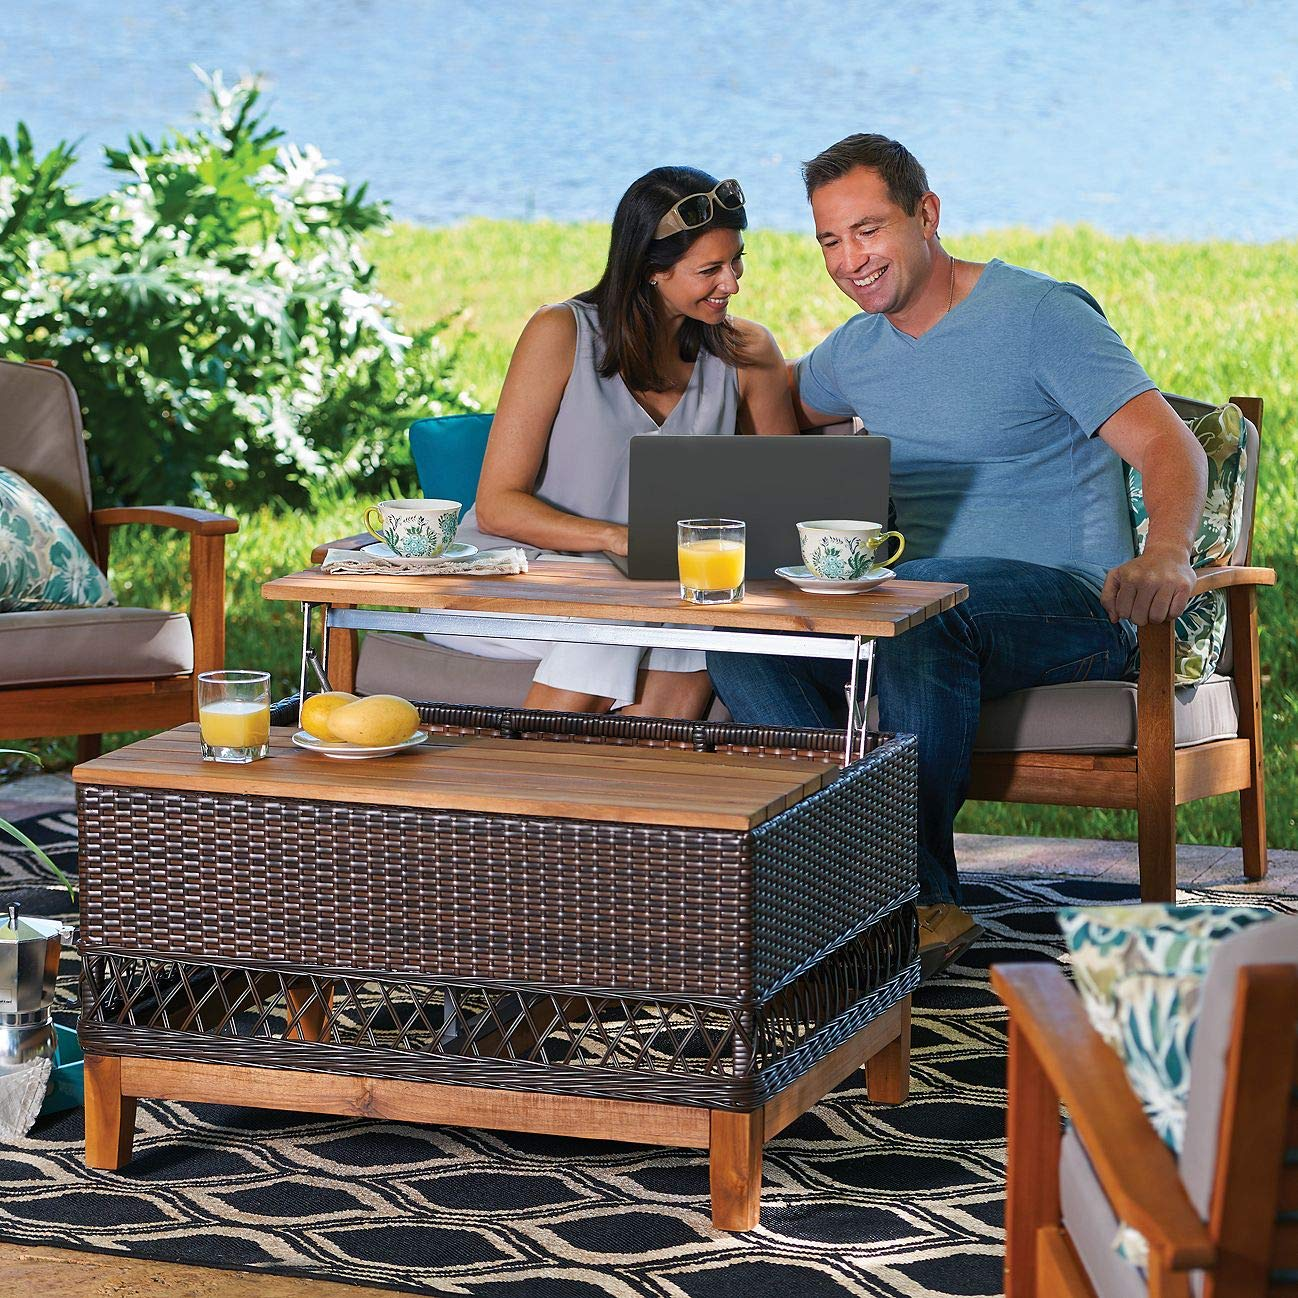 TisYourSeason Wicker Outdoor Coffee Table with Storage and Slatted Acacia Tropical Hardwood Lift-up Top Patio Furniture